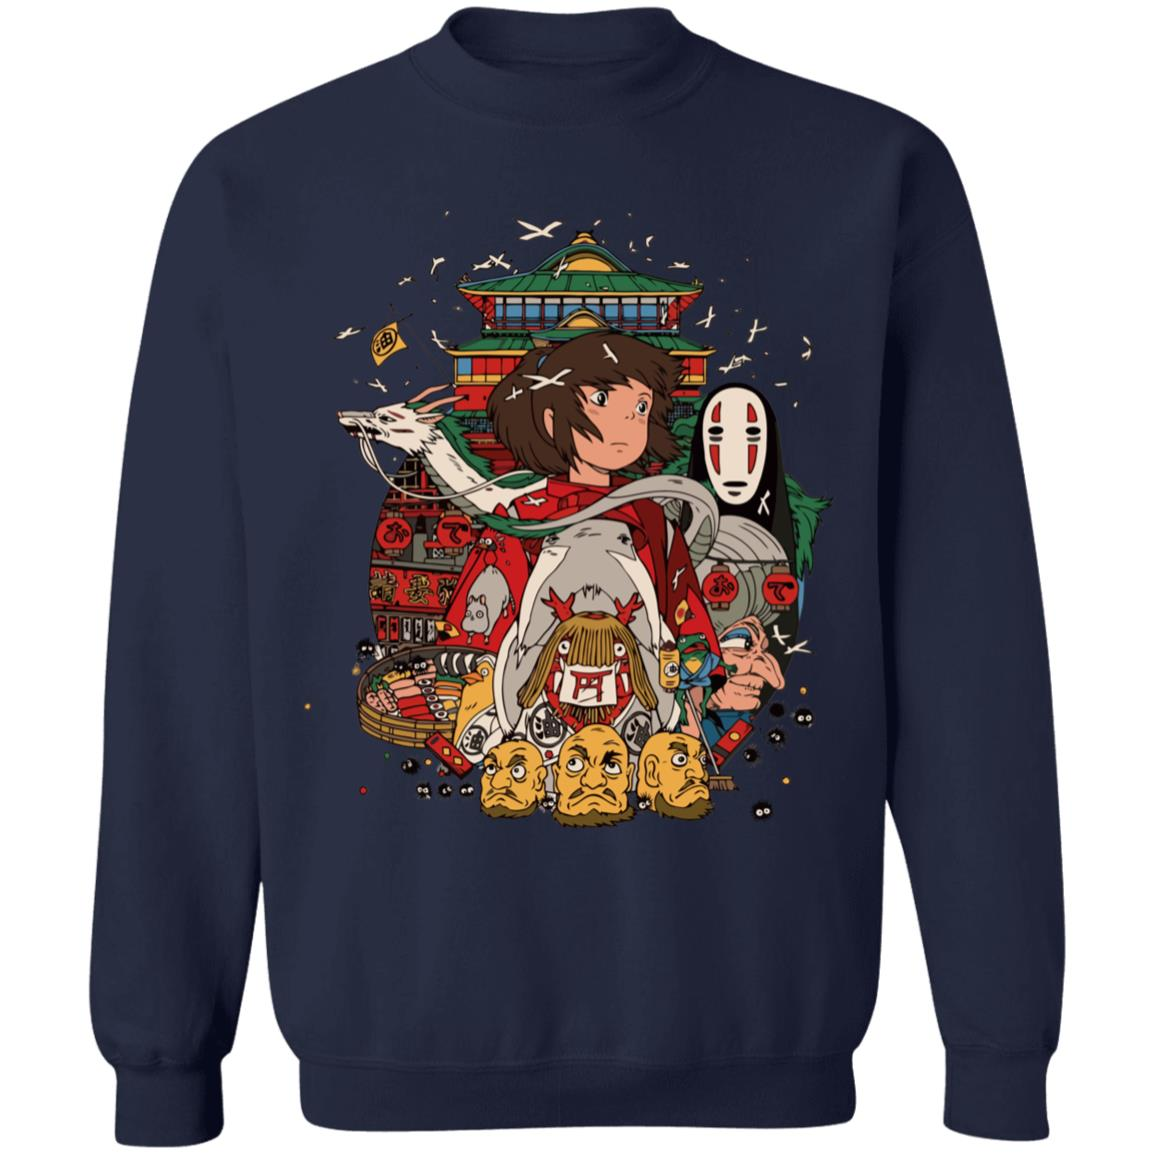 Spirited Away – Sen and Friends Sweatshirt